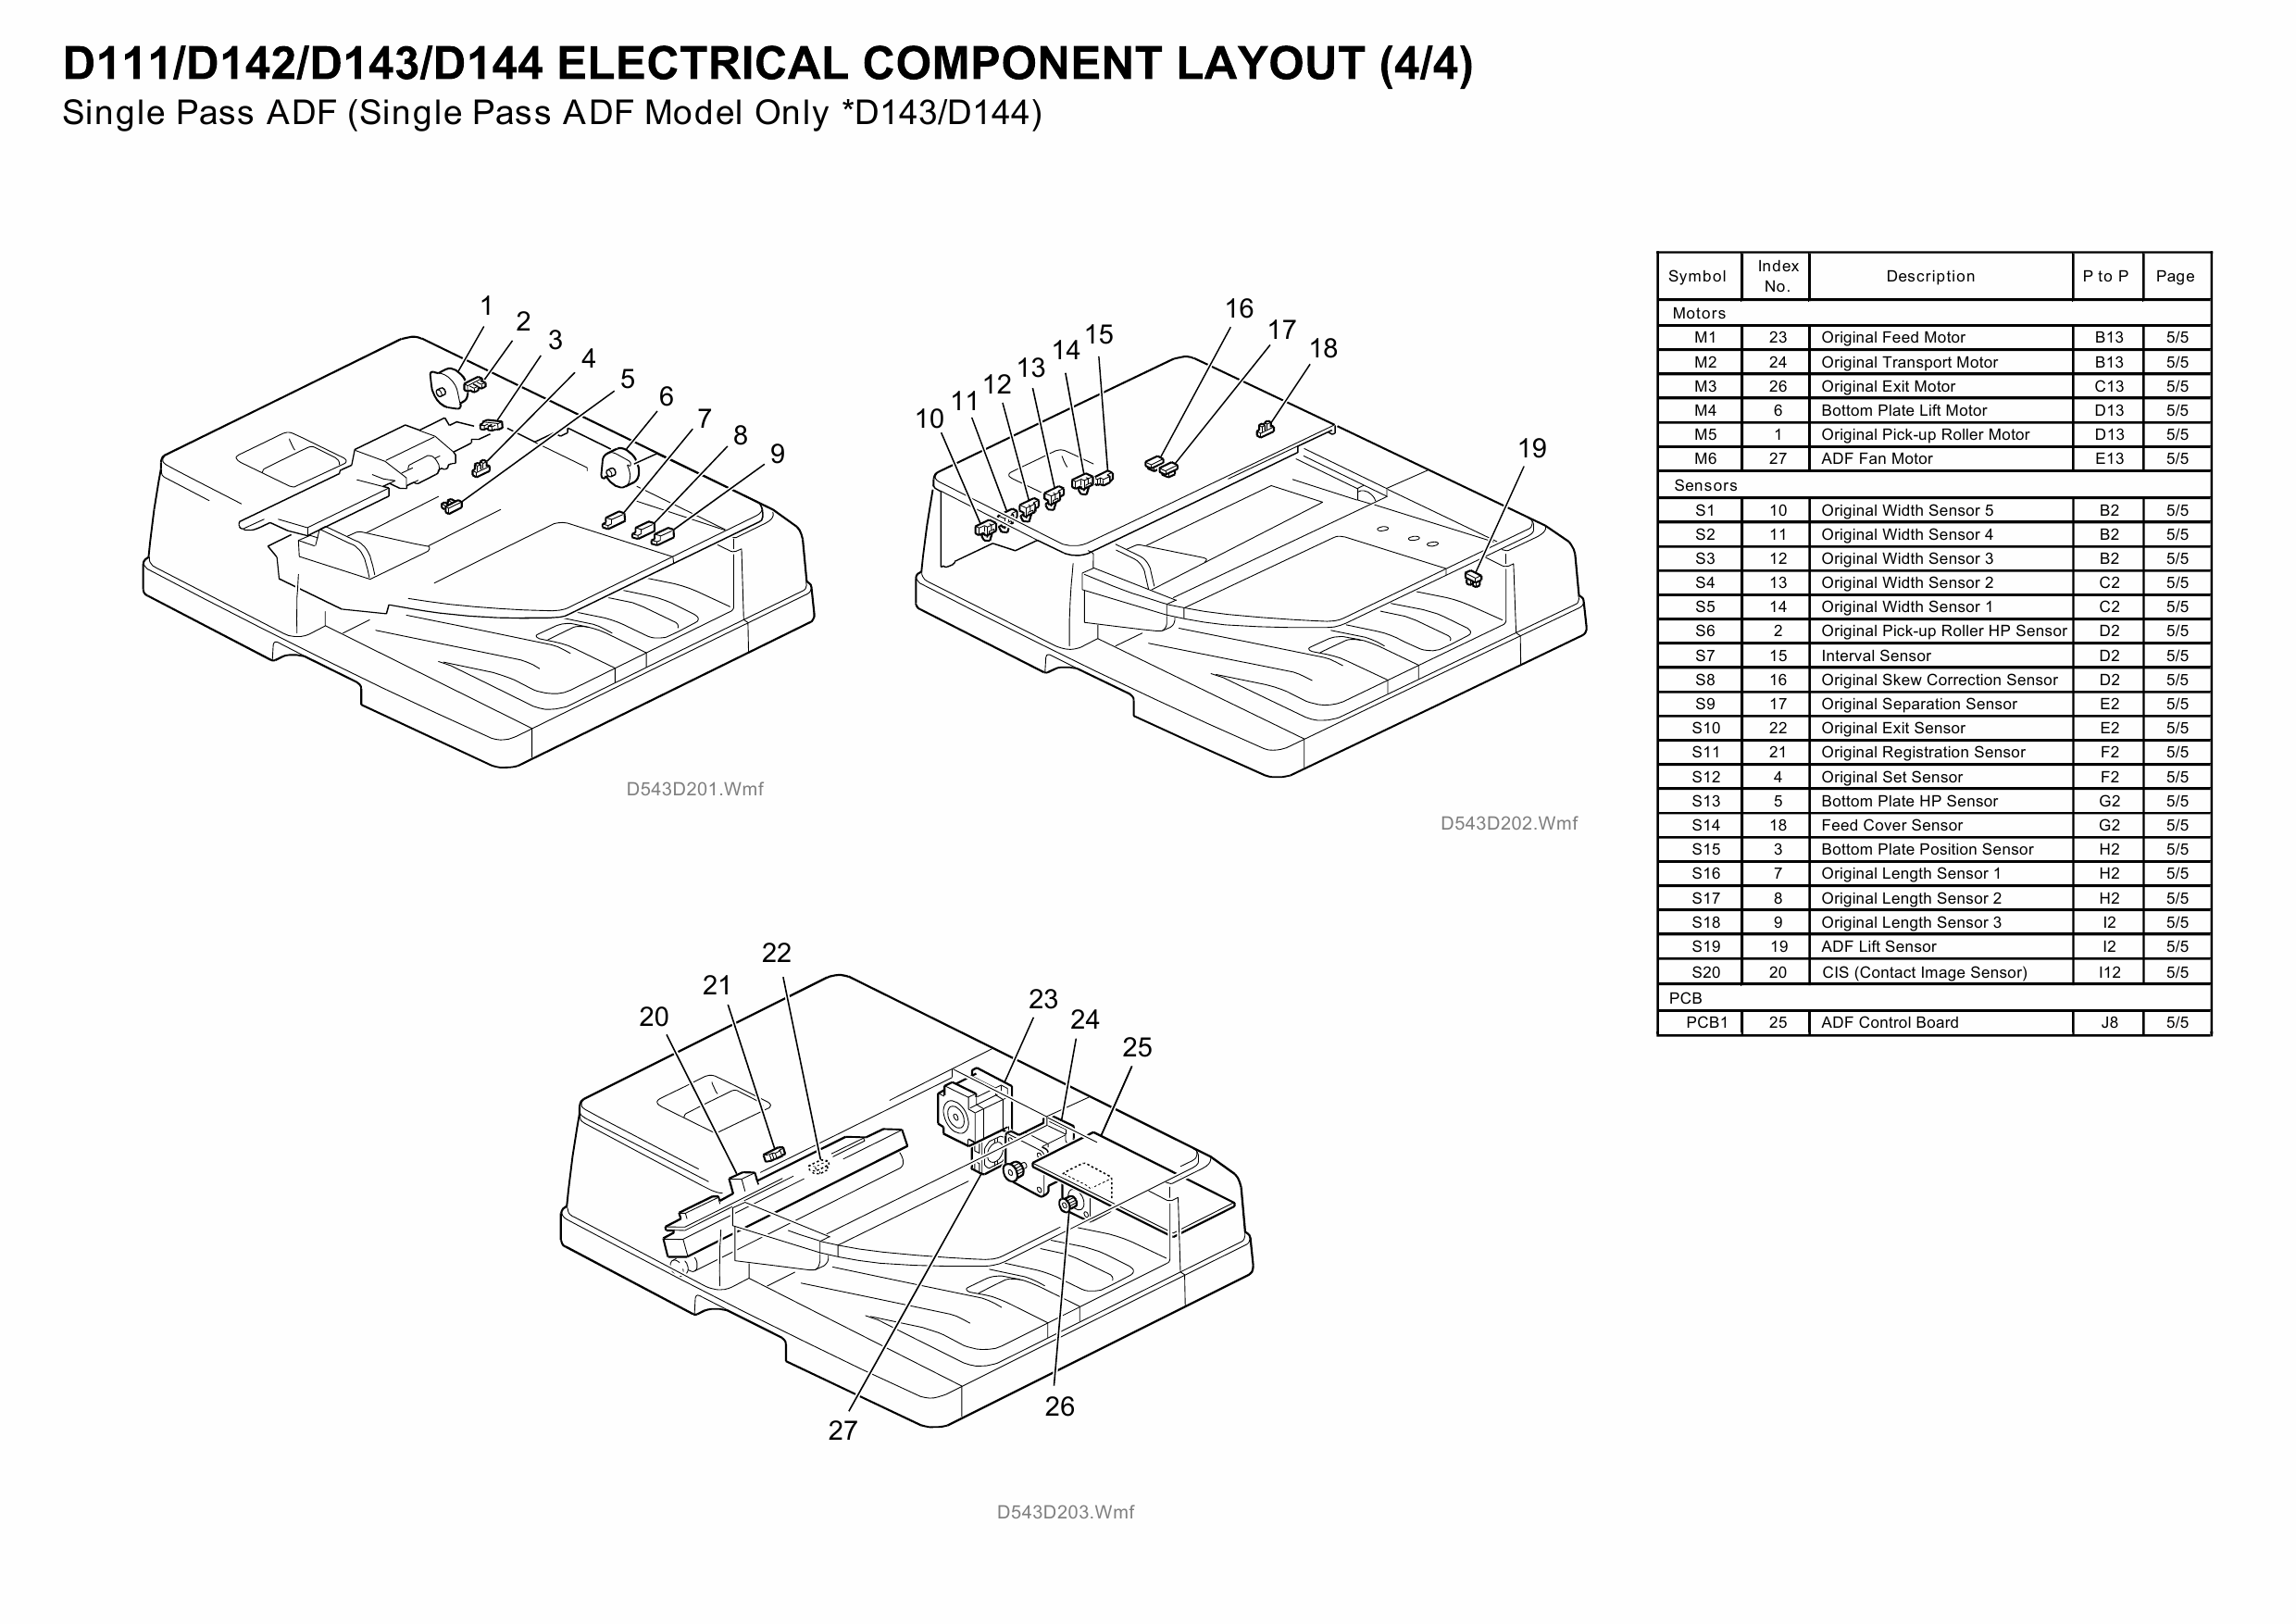 RICOH Aficio MP-C4502 C5502 D143 D144 Circuit Diagram-6